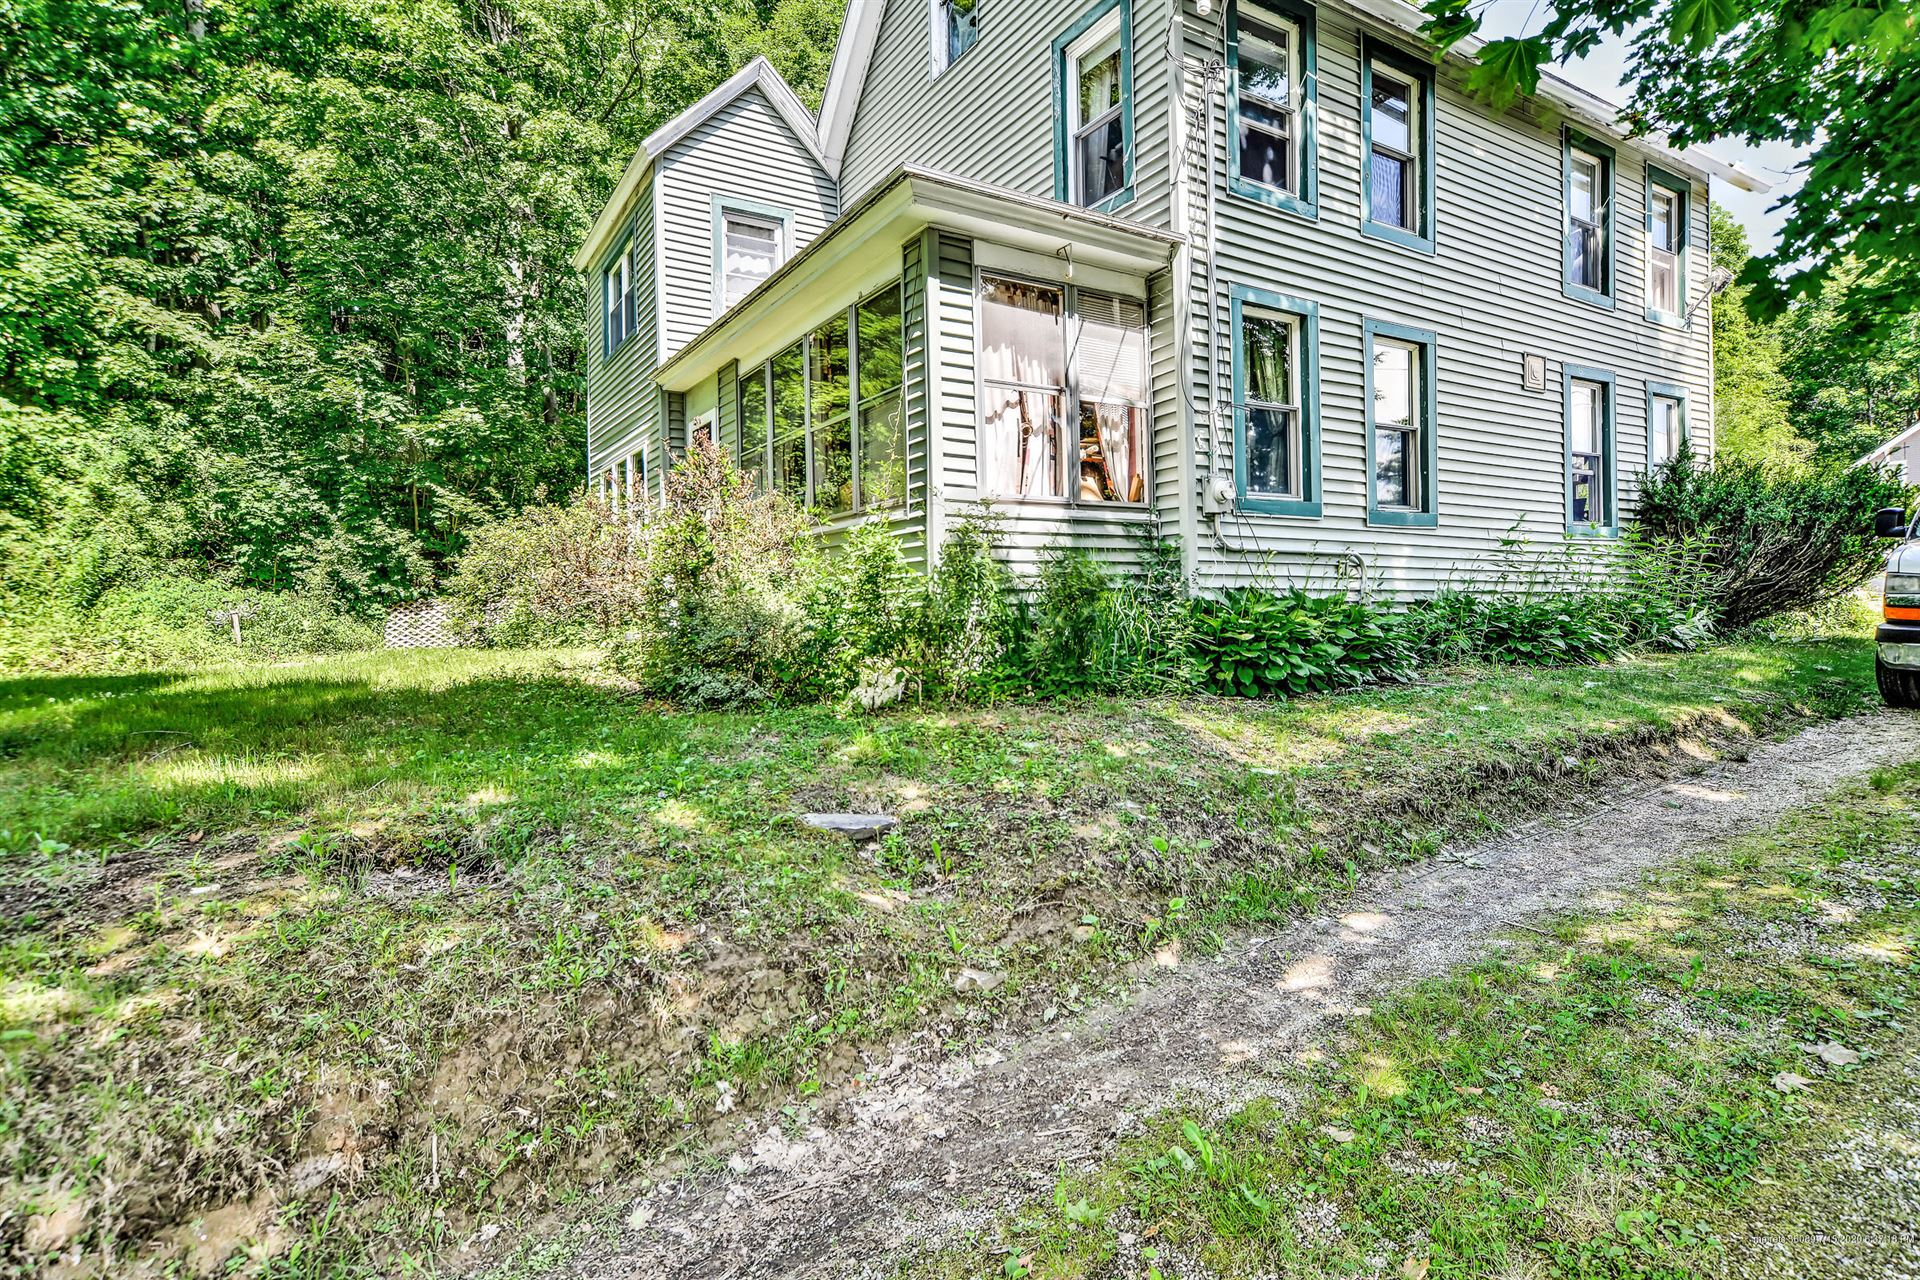 Photo of 69 Middle Street, Hallowell, ME 04347 (MLS # 1460028)